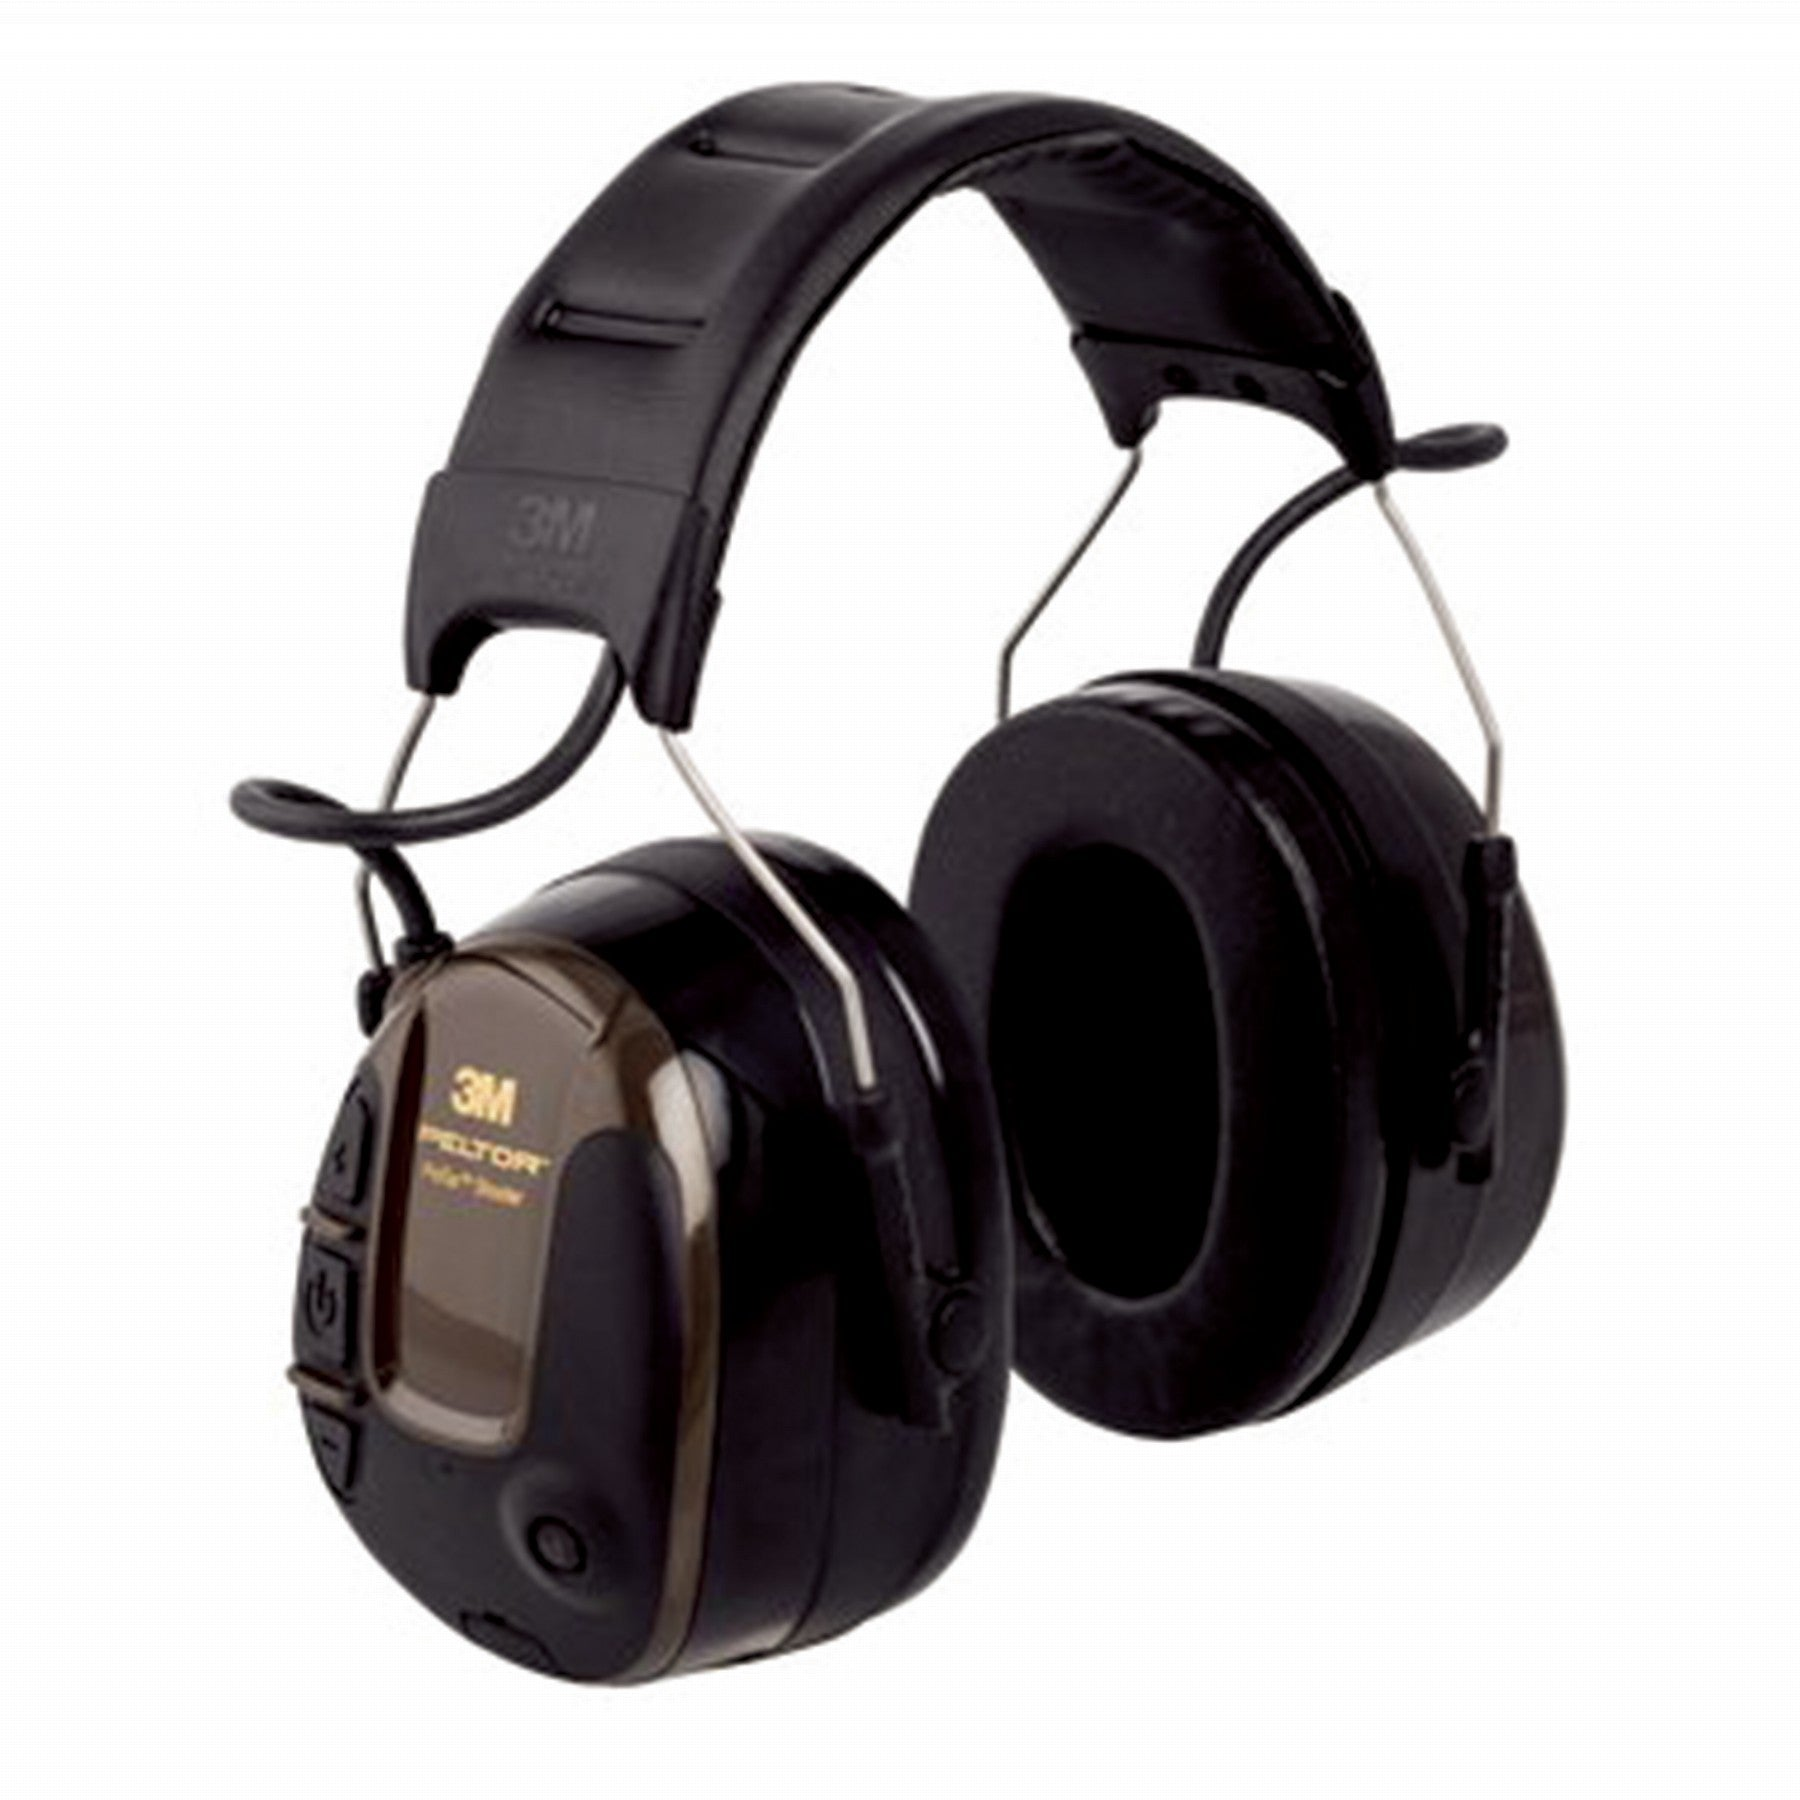 3M PELTOR ProTac Shooter Headset